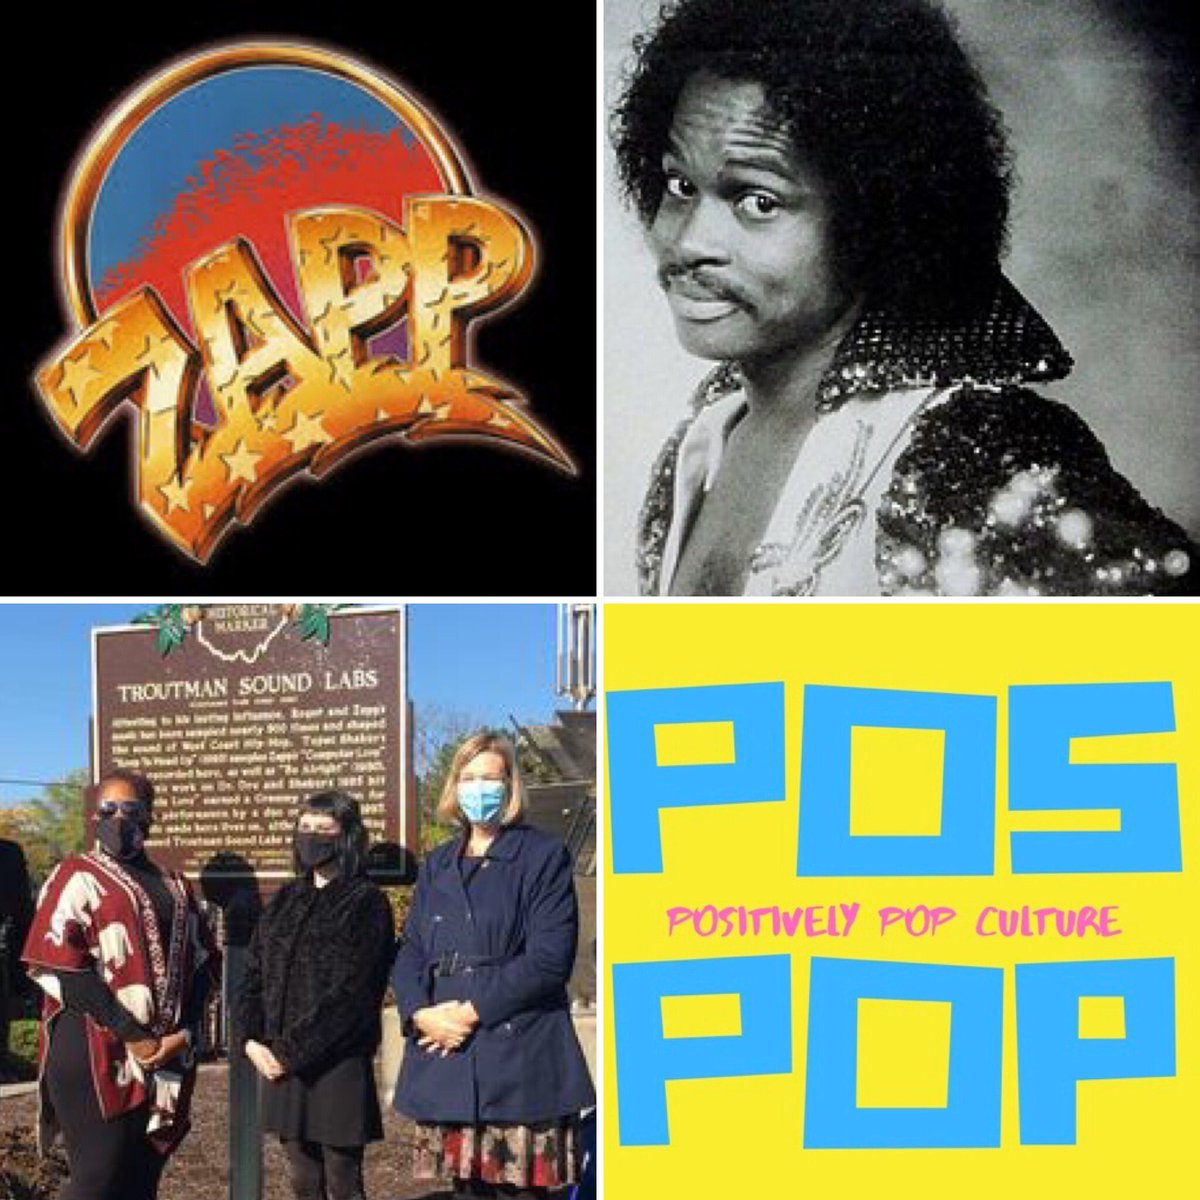 On today's episode of #PosPop, Bowling Green State University Ph.D. candidate Jackie Hudson joins us to talk about pioneering #funk musician Roger Troutman and his band #Zapp. Find us wherever you get your #podcasts! #podcast #popculture